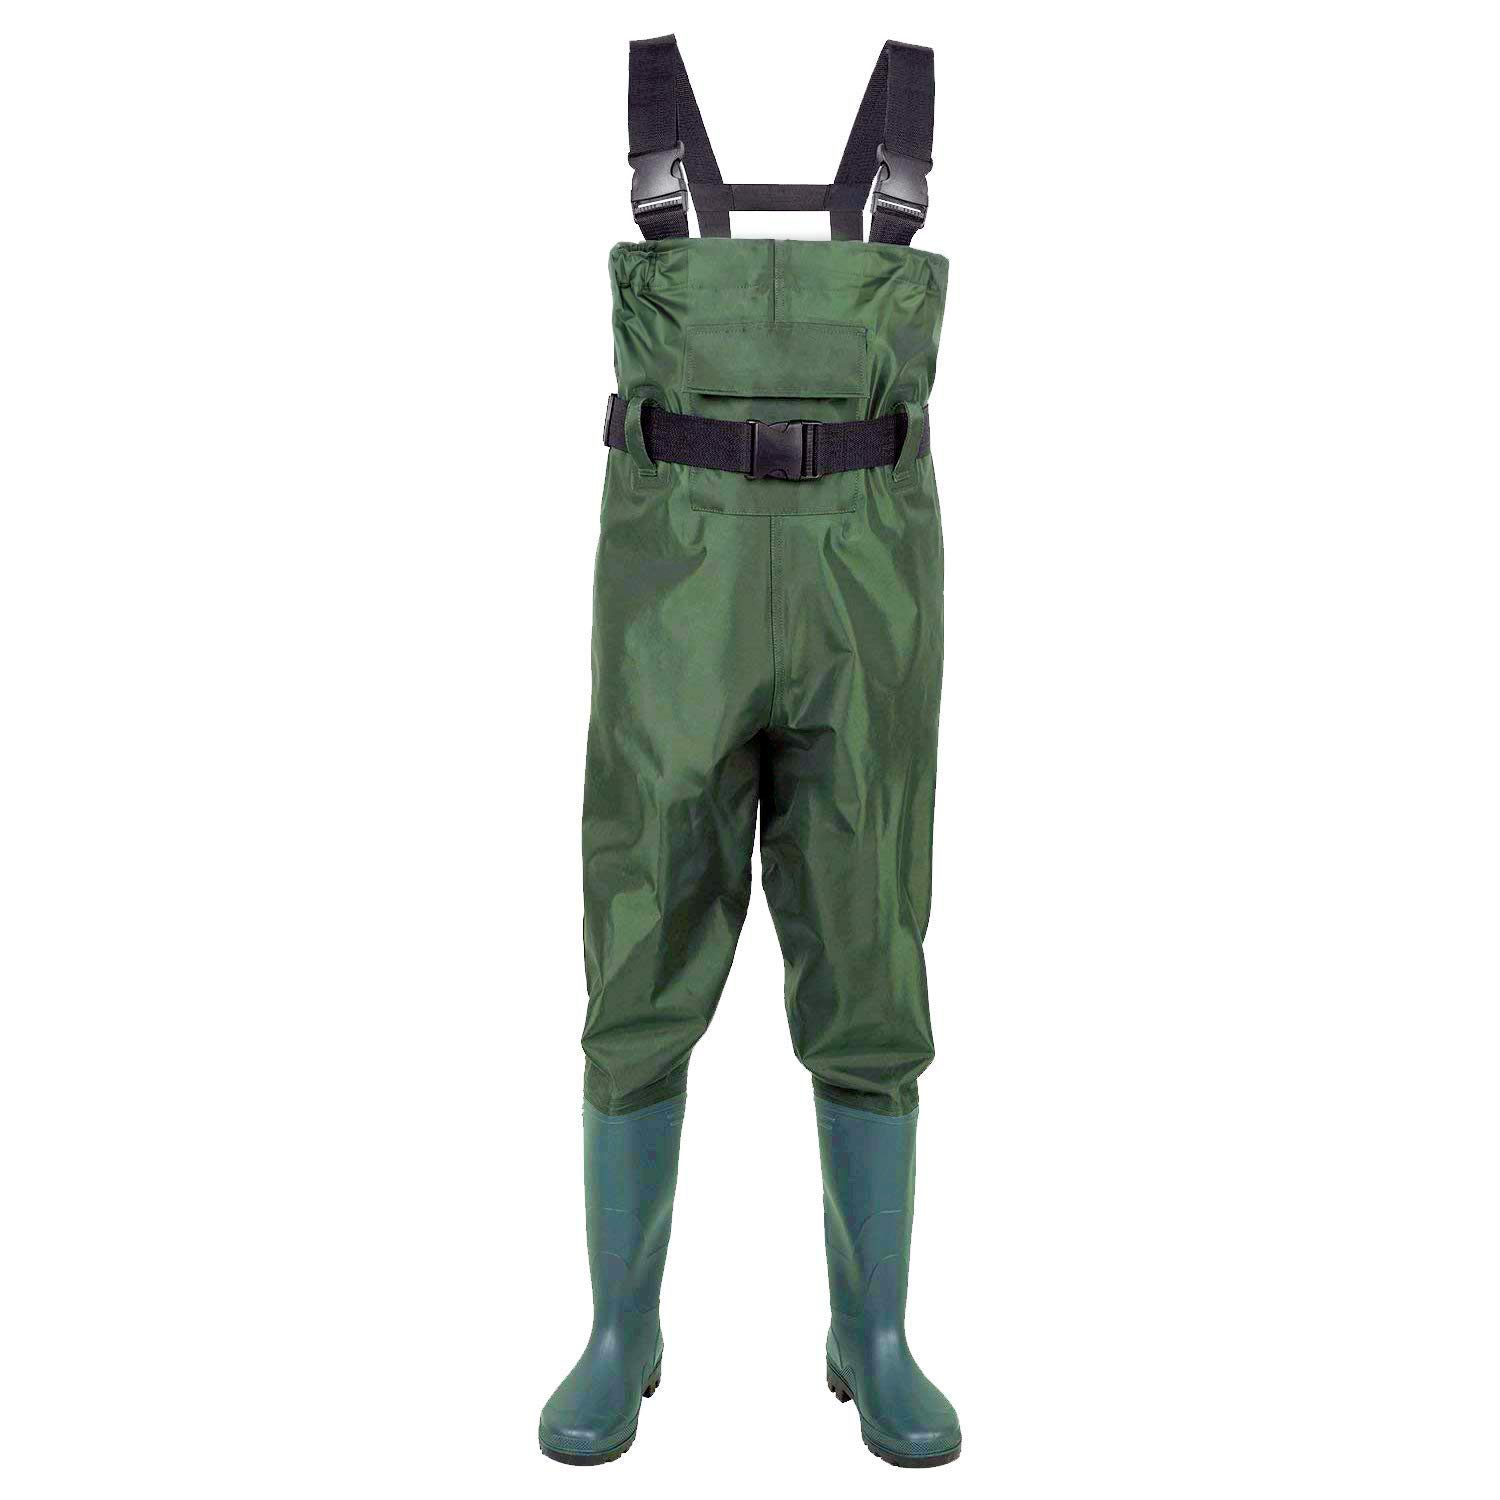 超激安 Azuki Stockingfoot通気性Waders ArmyGreen、軽量ナイロンWaders B0771PG5YX Men Size 12 Men// Women Size 14|ArmyGreen Nylon ArmyGreen Nylon Men Size 12/ Women Size 14, ハヤカワチョウ:01d45c16 --- buyanyproducts.com